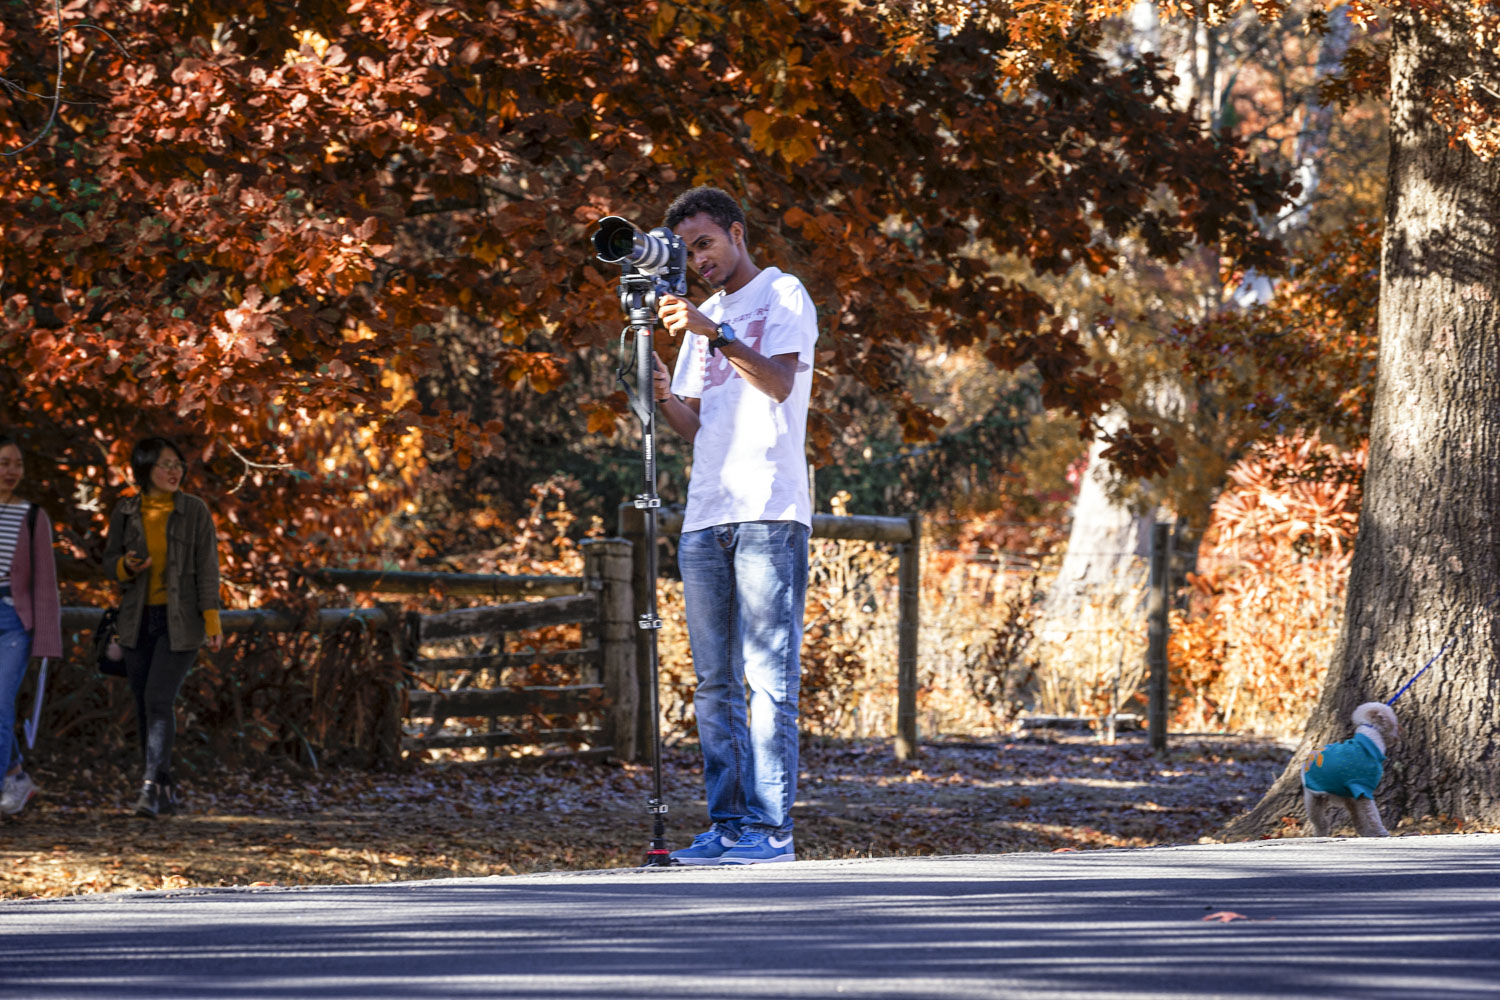 Photographers come from across Victoria all to get those picturesque images of the rich red autumn leaves.